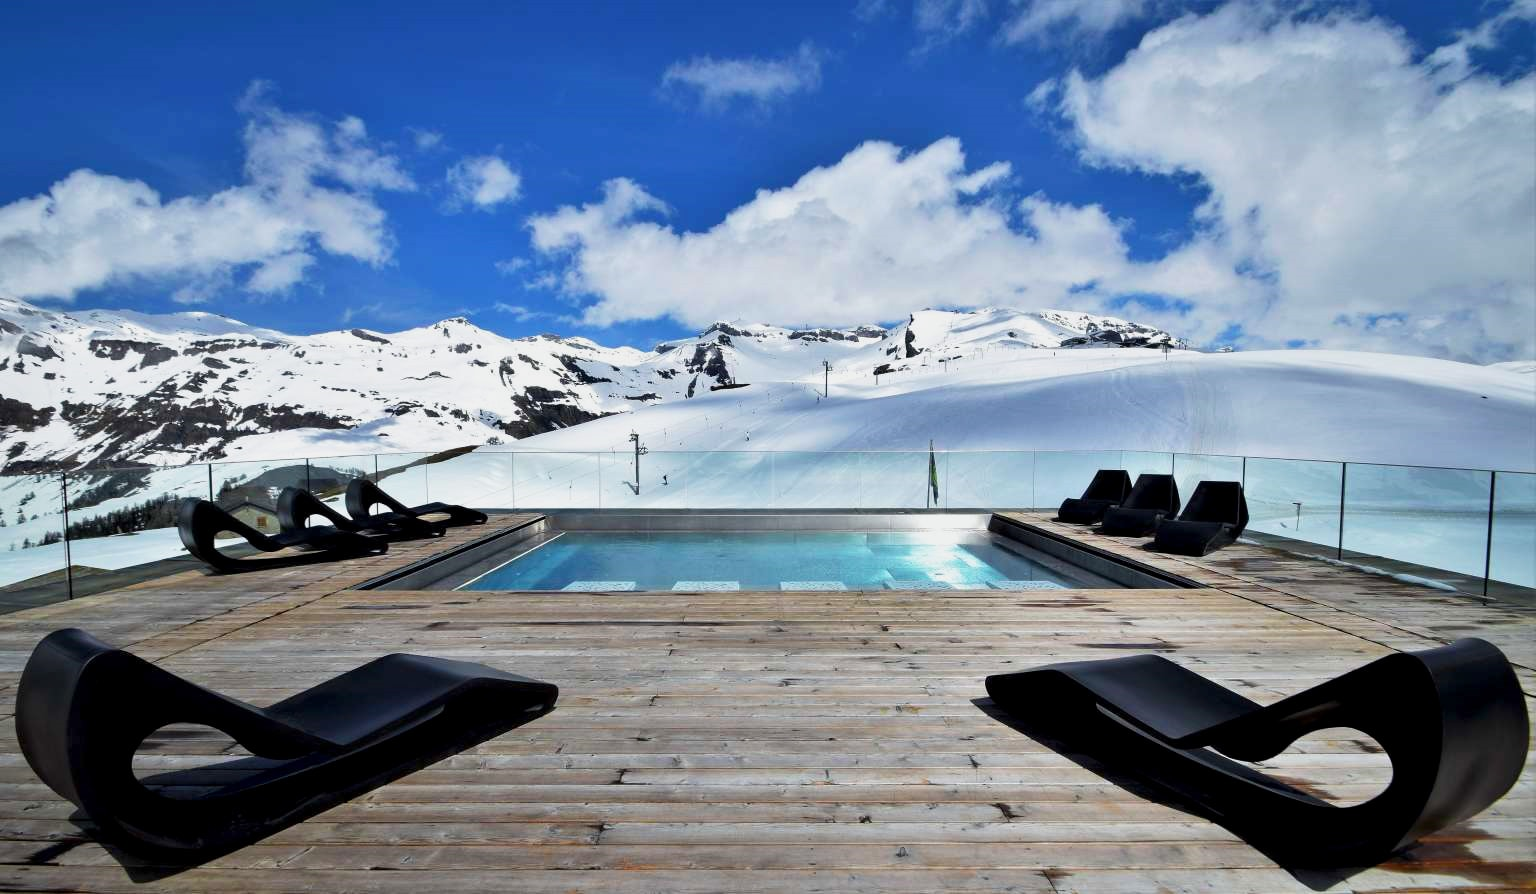 Chetzeron design Hotel, Cran Montana-swimming pool-as seen on PARIDEO sustainable interior design